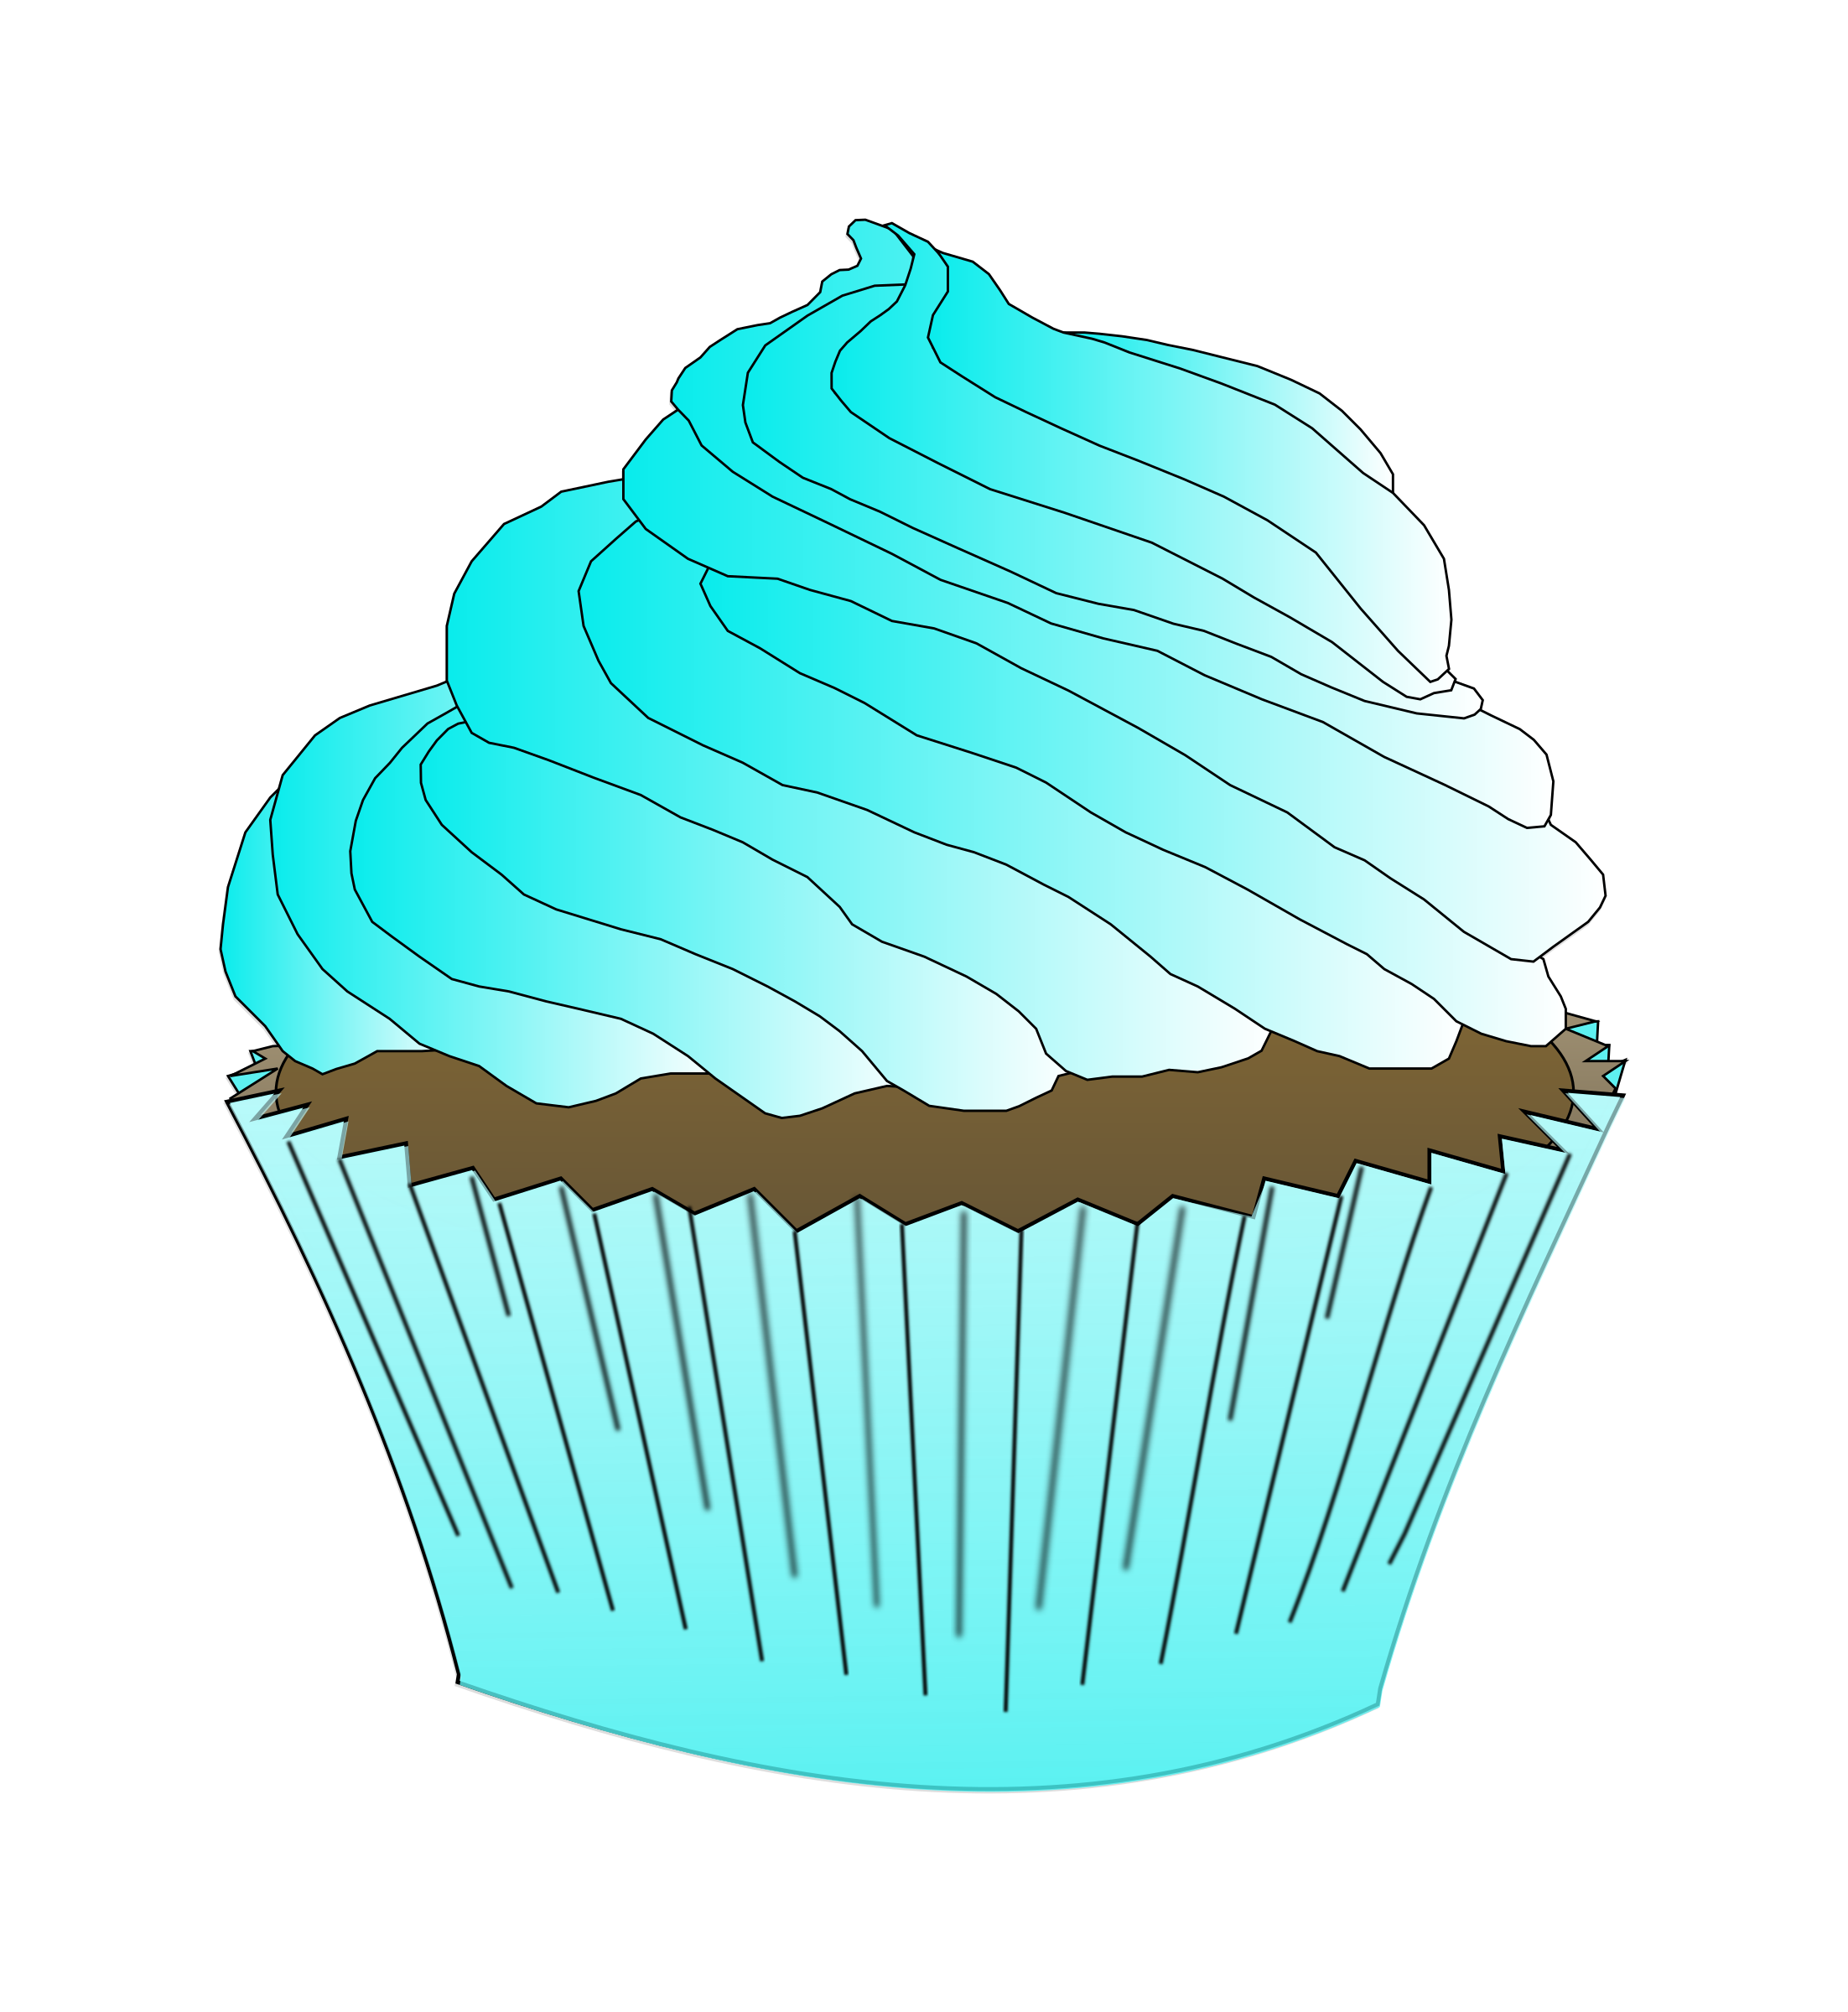 Muffin clipart svg. Chocolate teal cupcake big